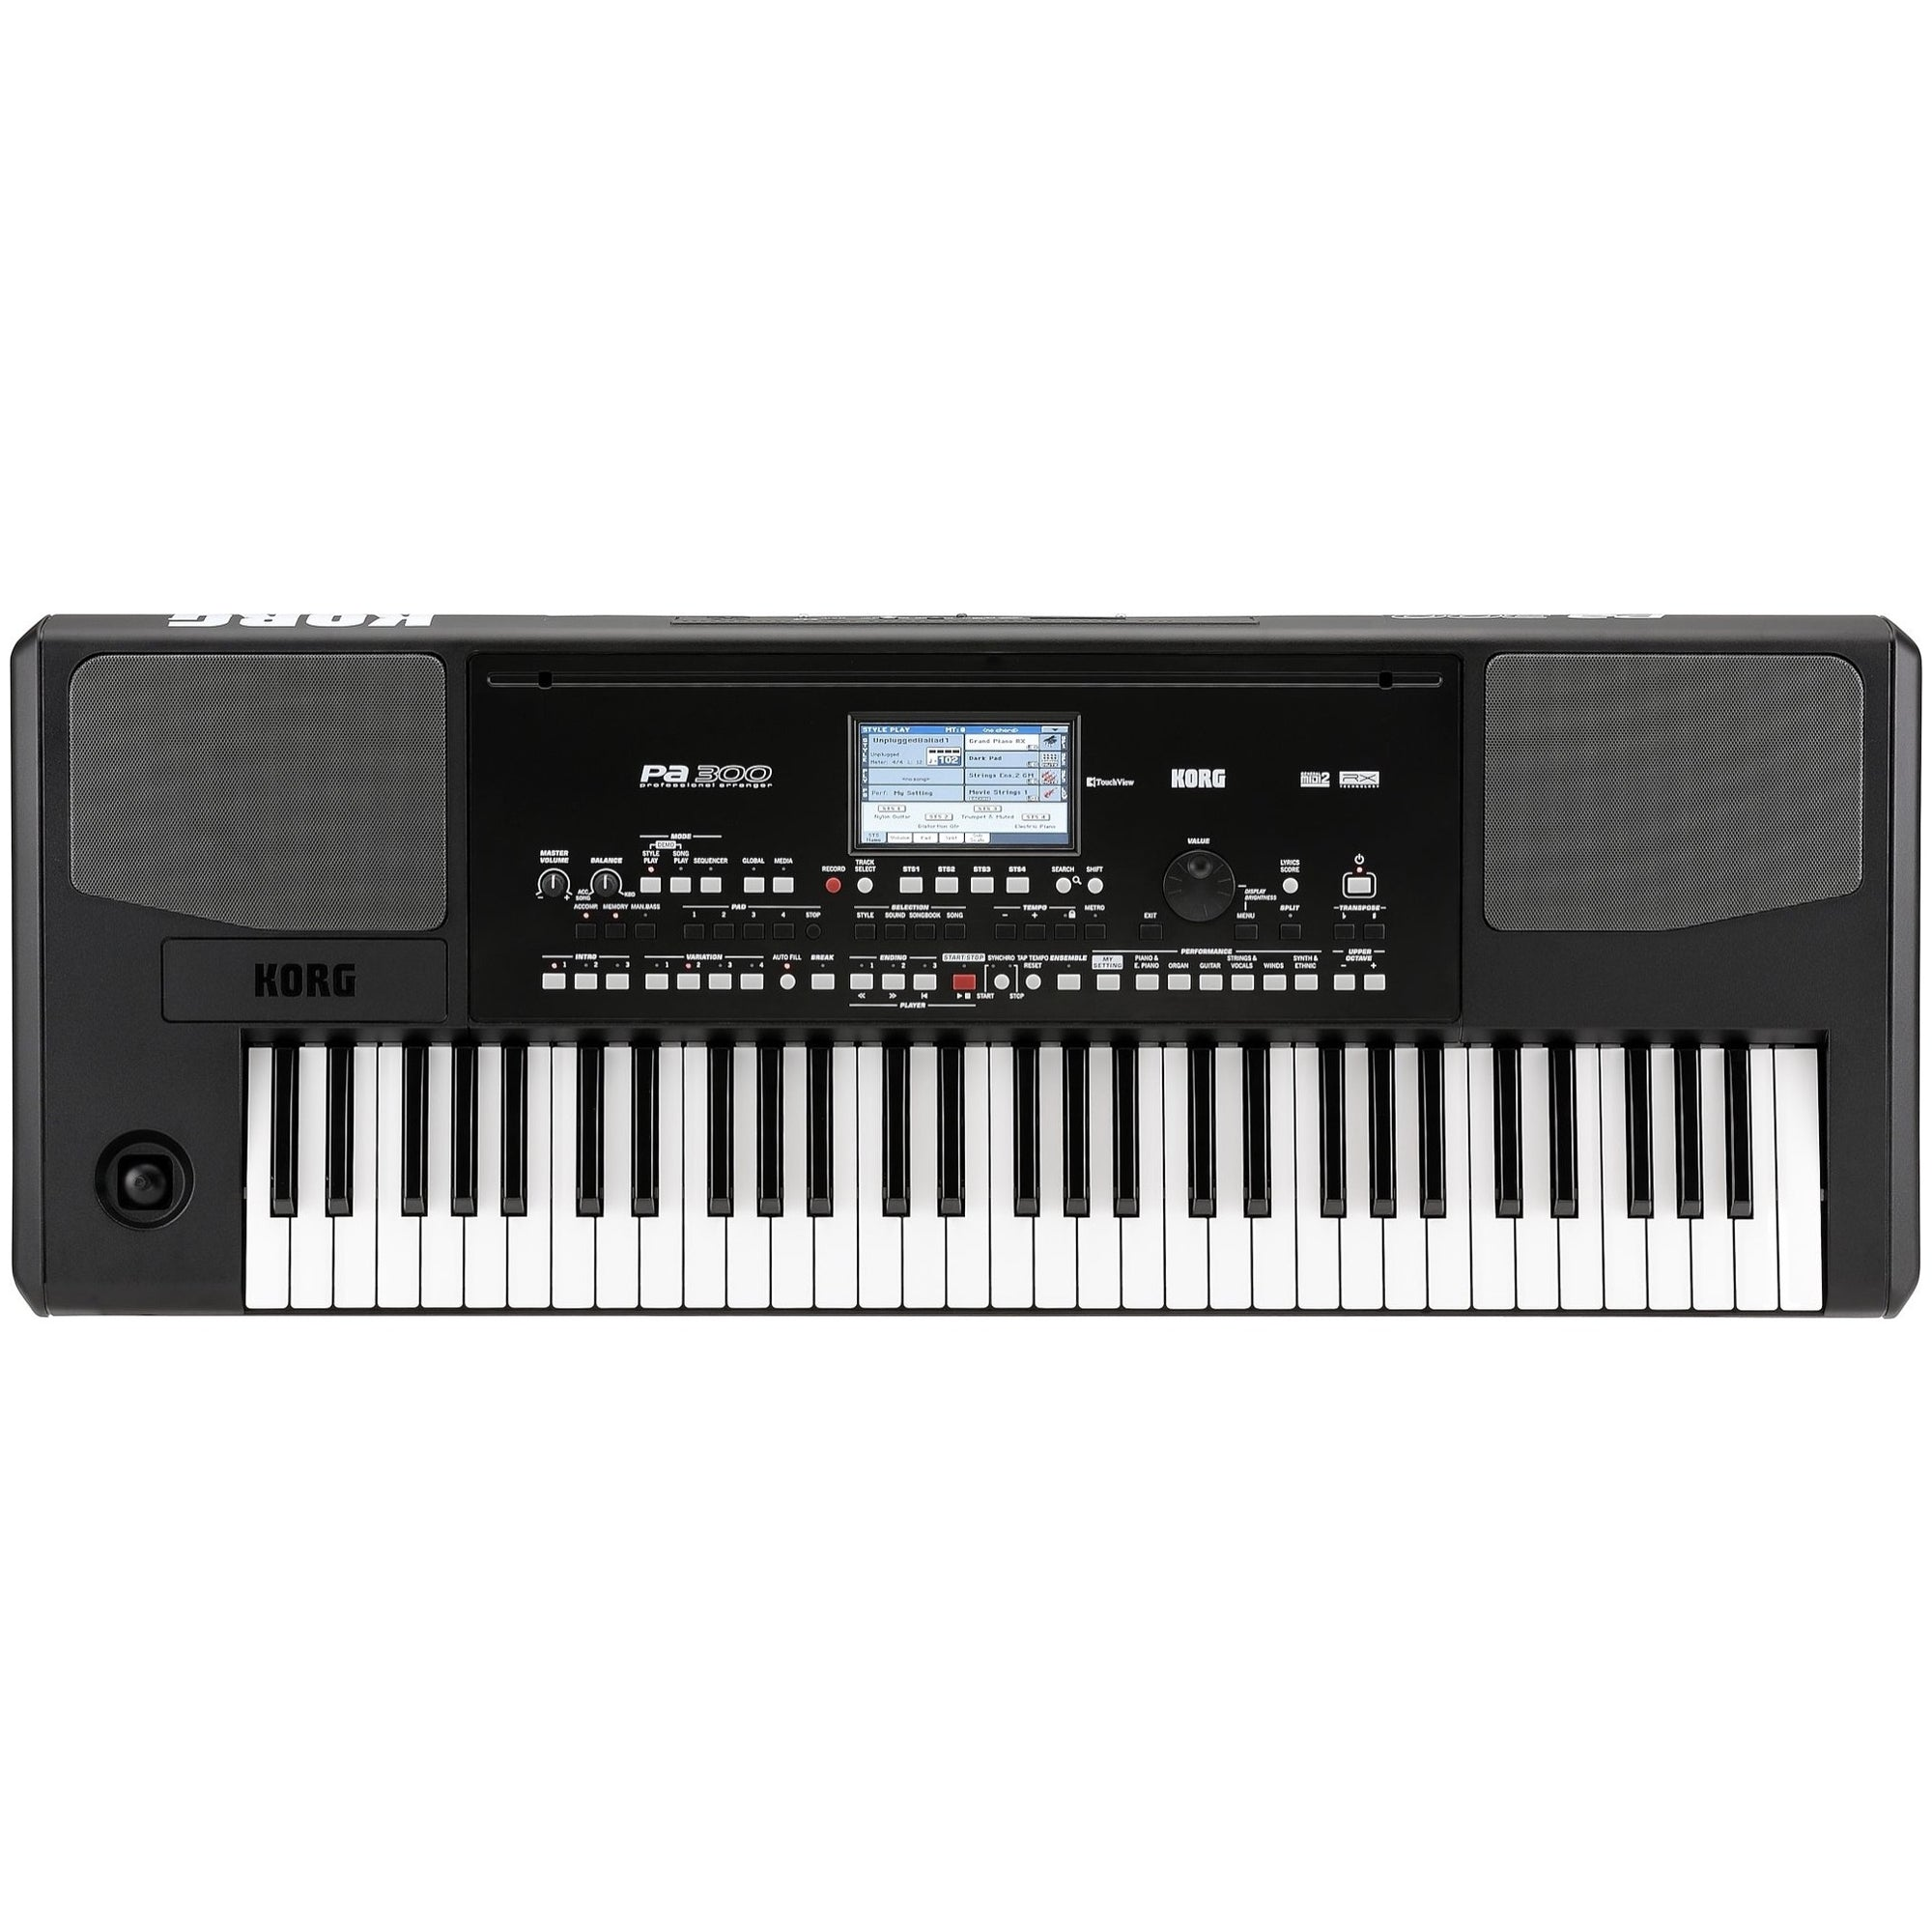 Korg Pa300 Arranger Workstation Keyboard, 61-Key